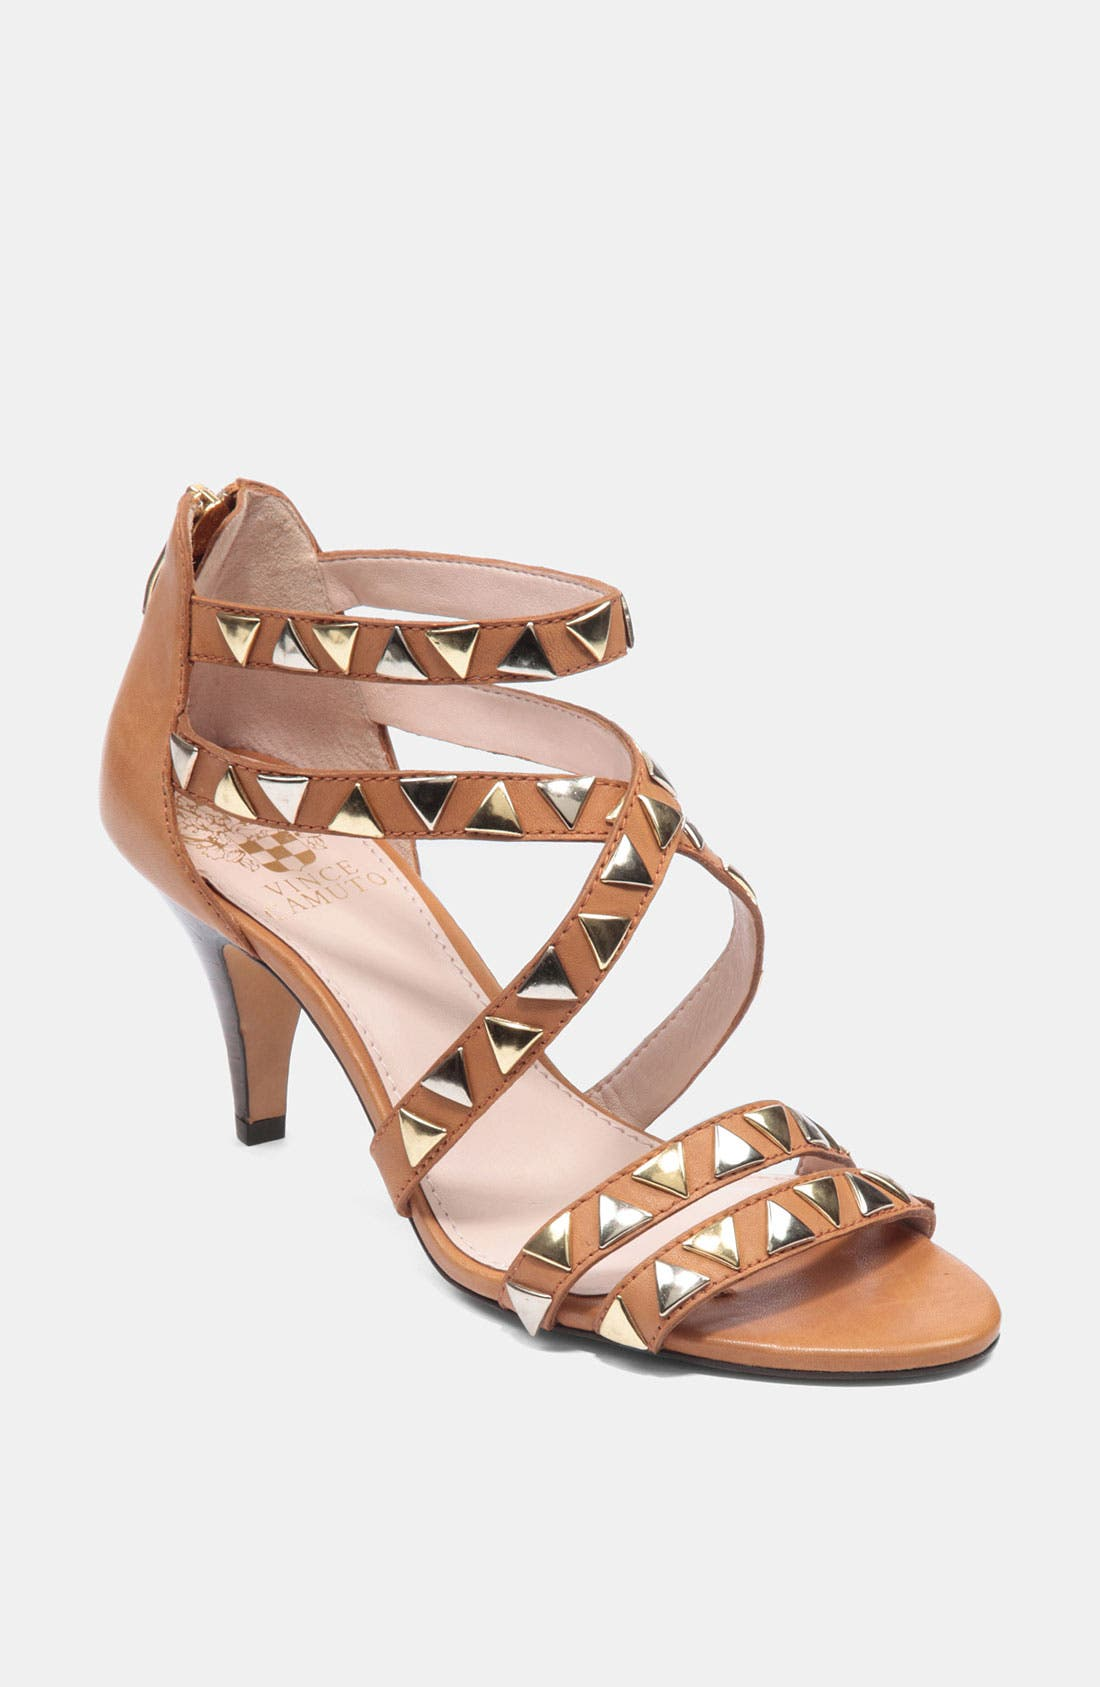 Alternate Image 1 Selected - Vince Camuto 'Mikal' Sandal